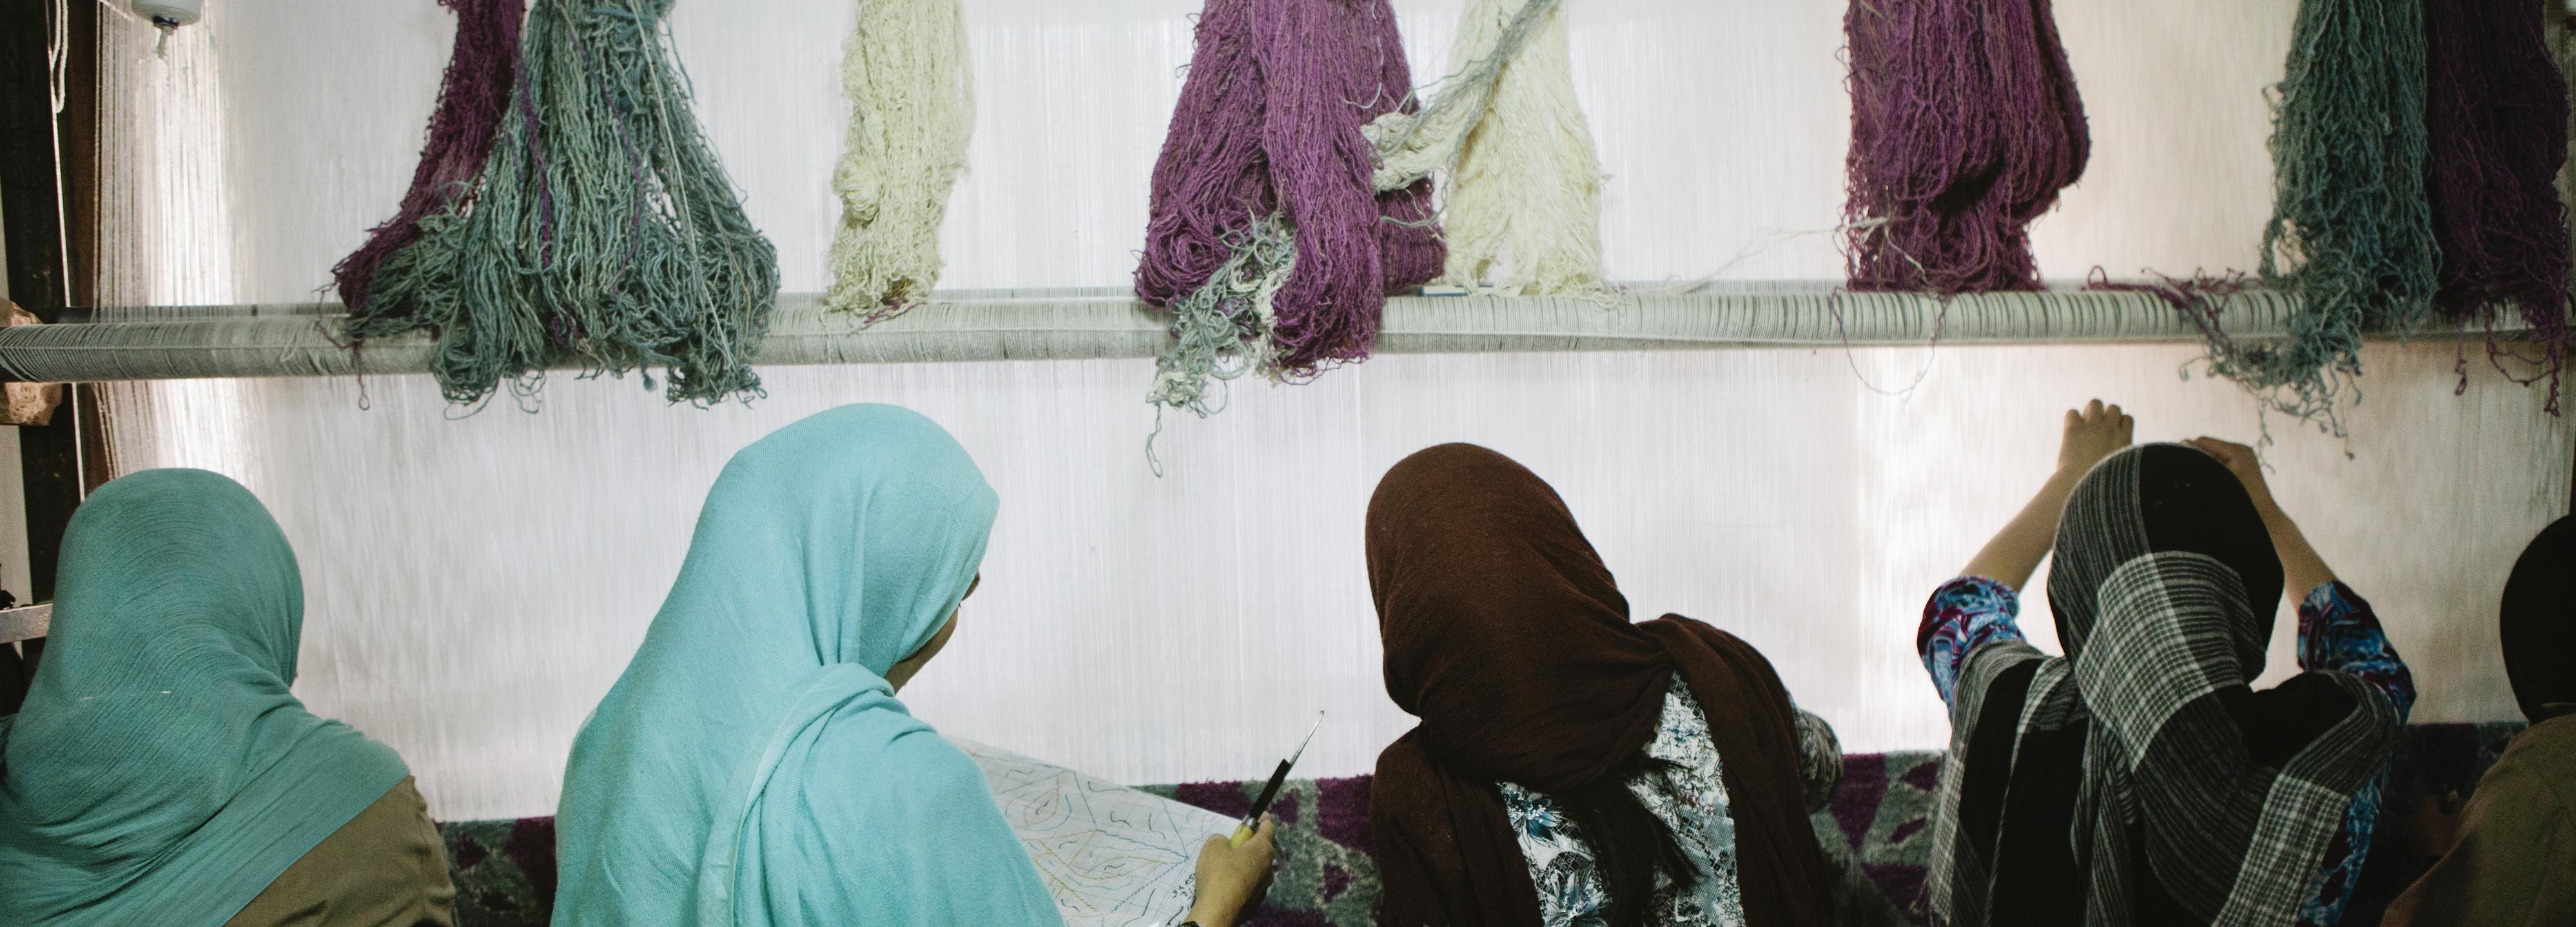 Textile workers © Goodweave